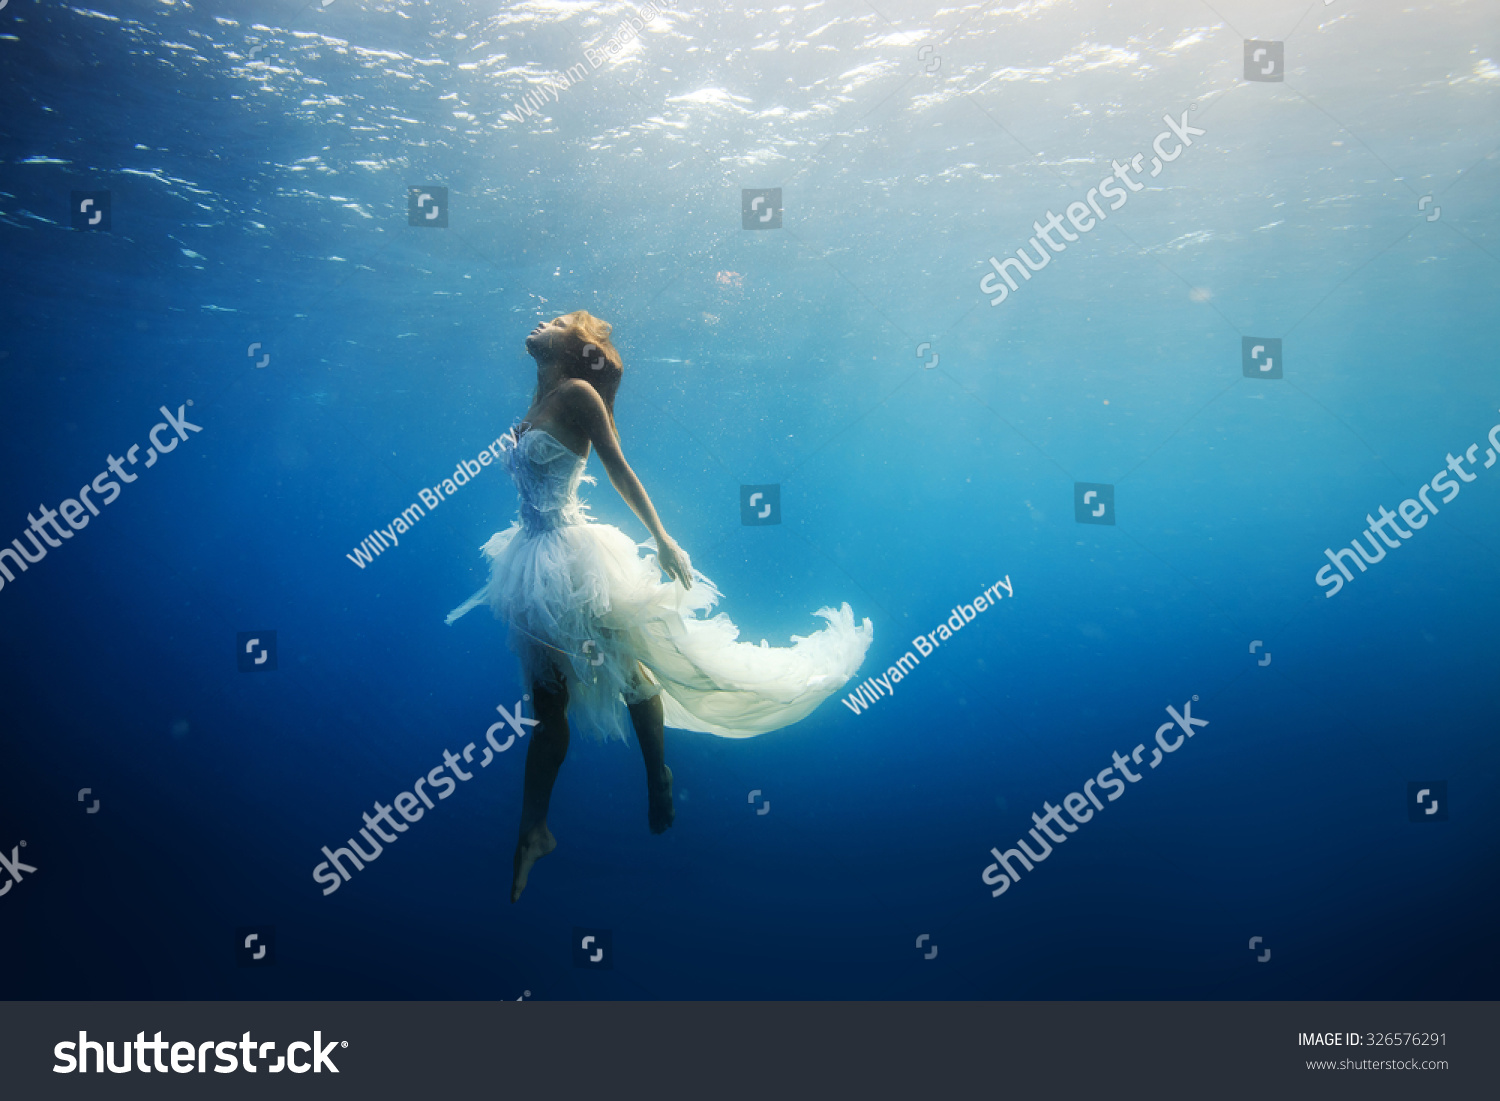 A girl wearing fashion white dress underwater in blue deep A Wild Ocean Scenery without fish